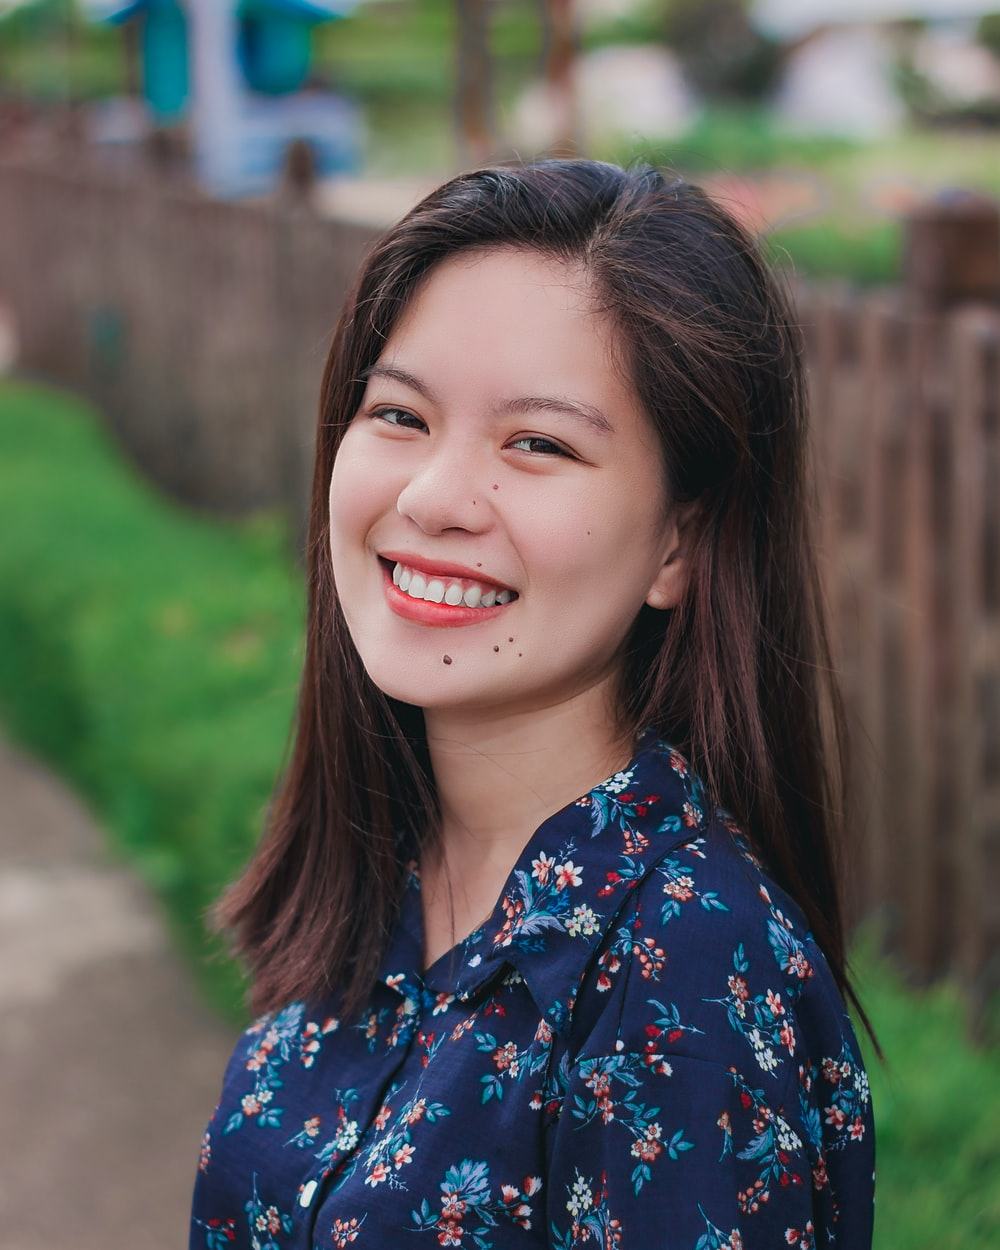 portrait photography of woman wearing blue and red floral collared top smiling